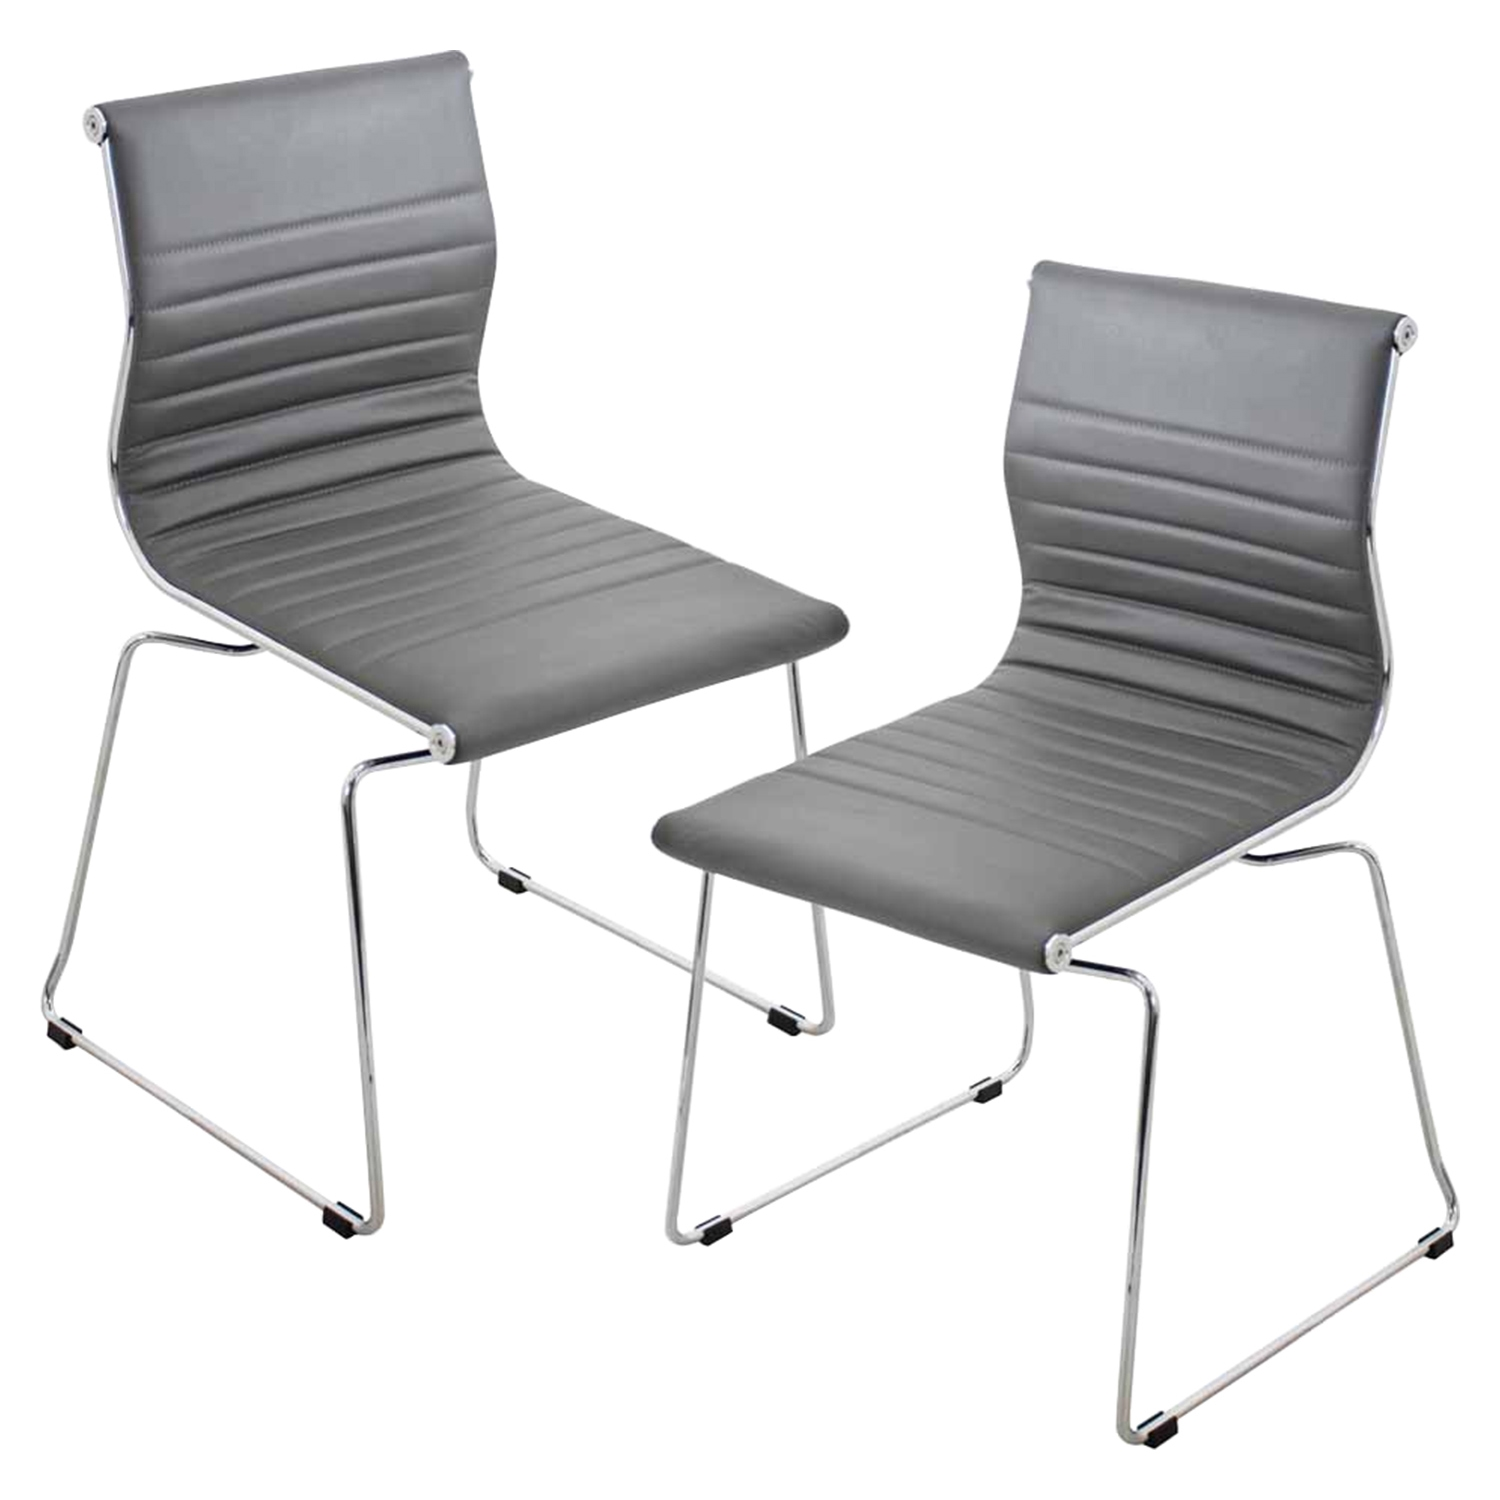 Master Stackable Dining Chair - Gray (Set of 2)